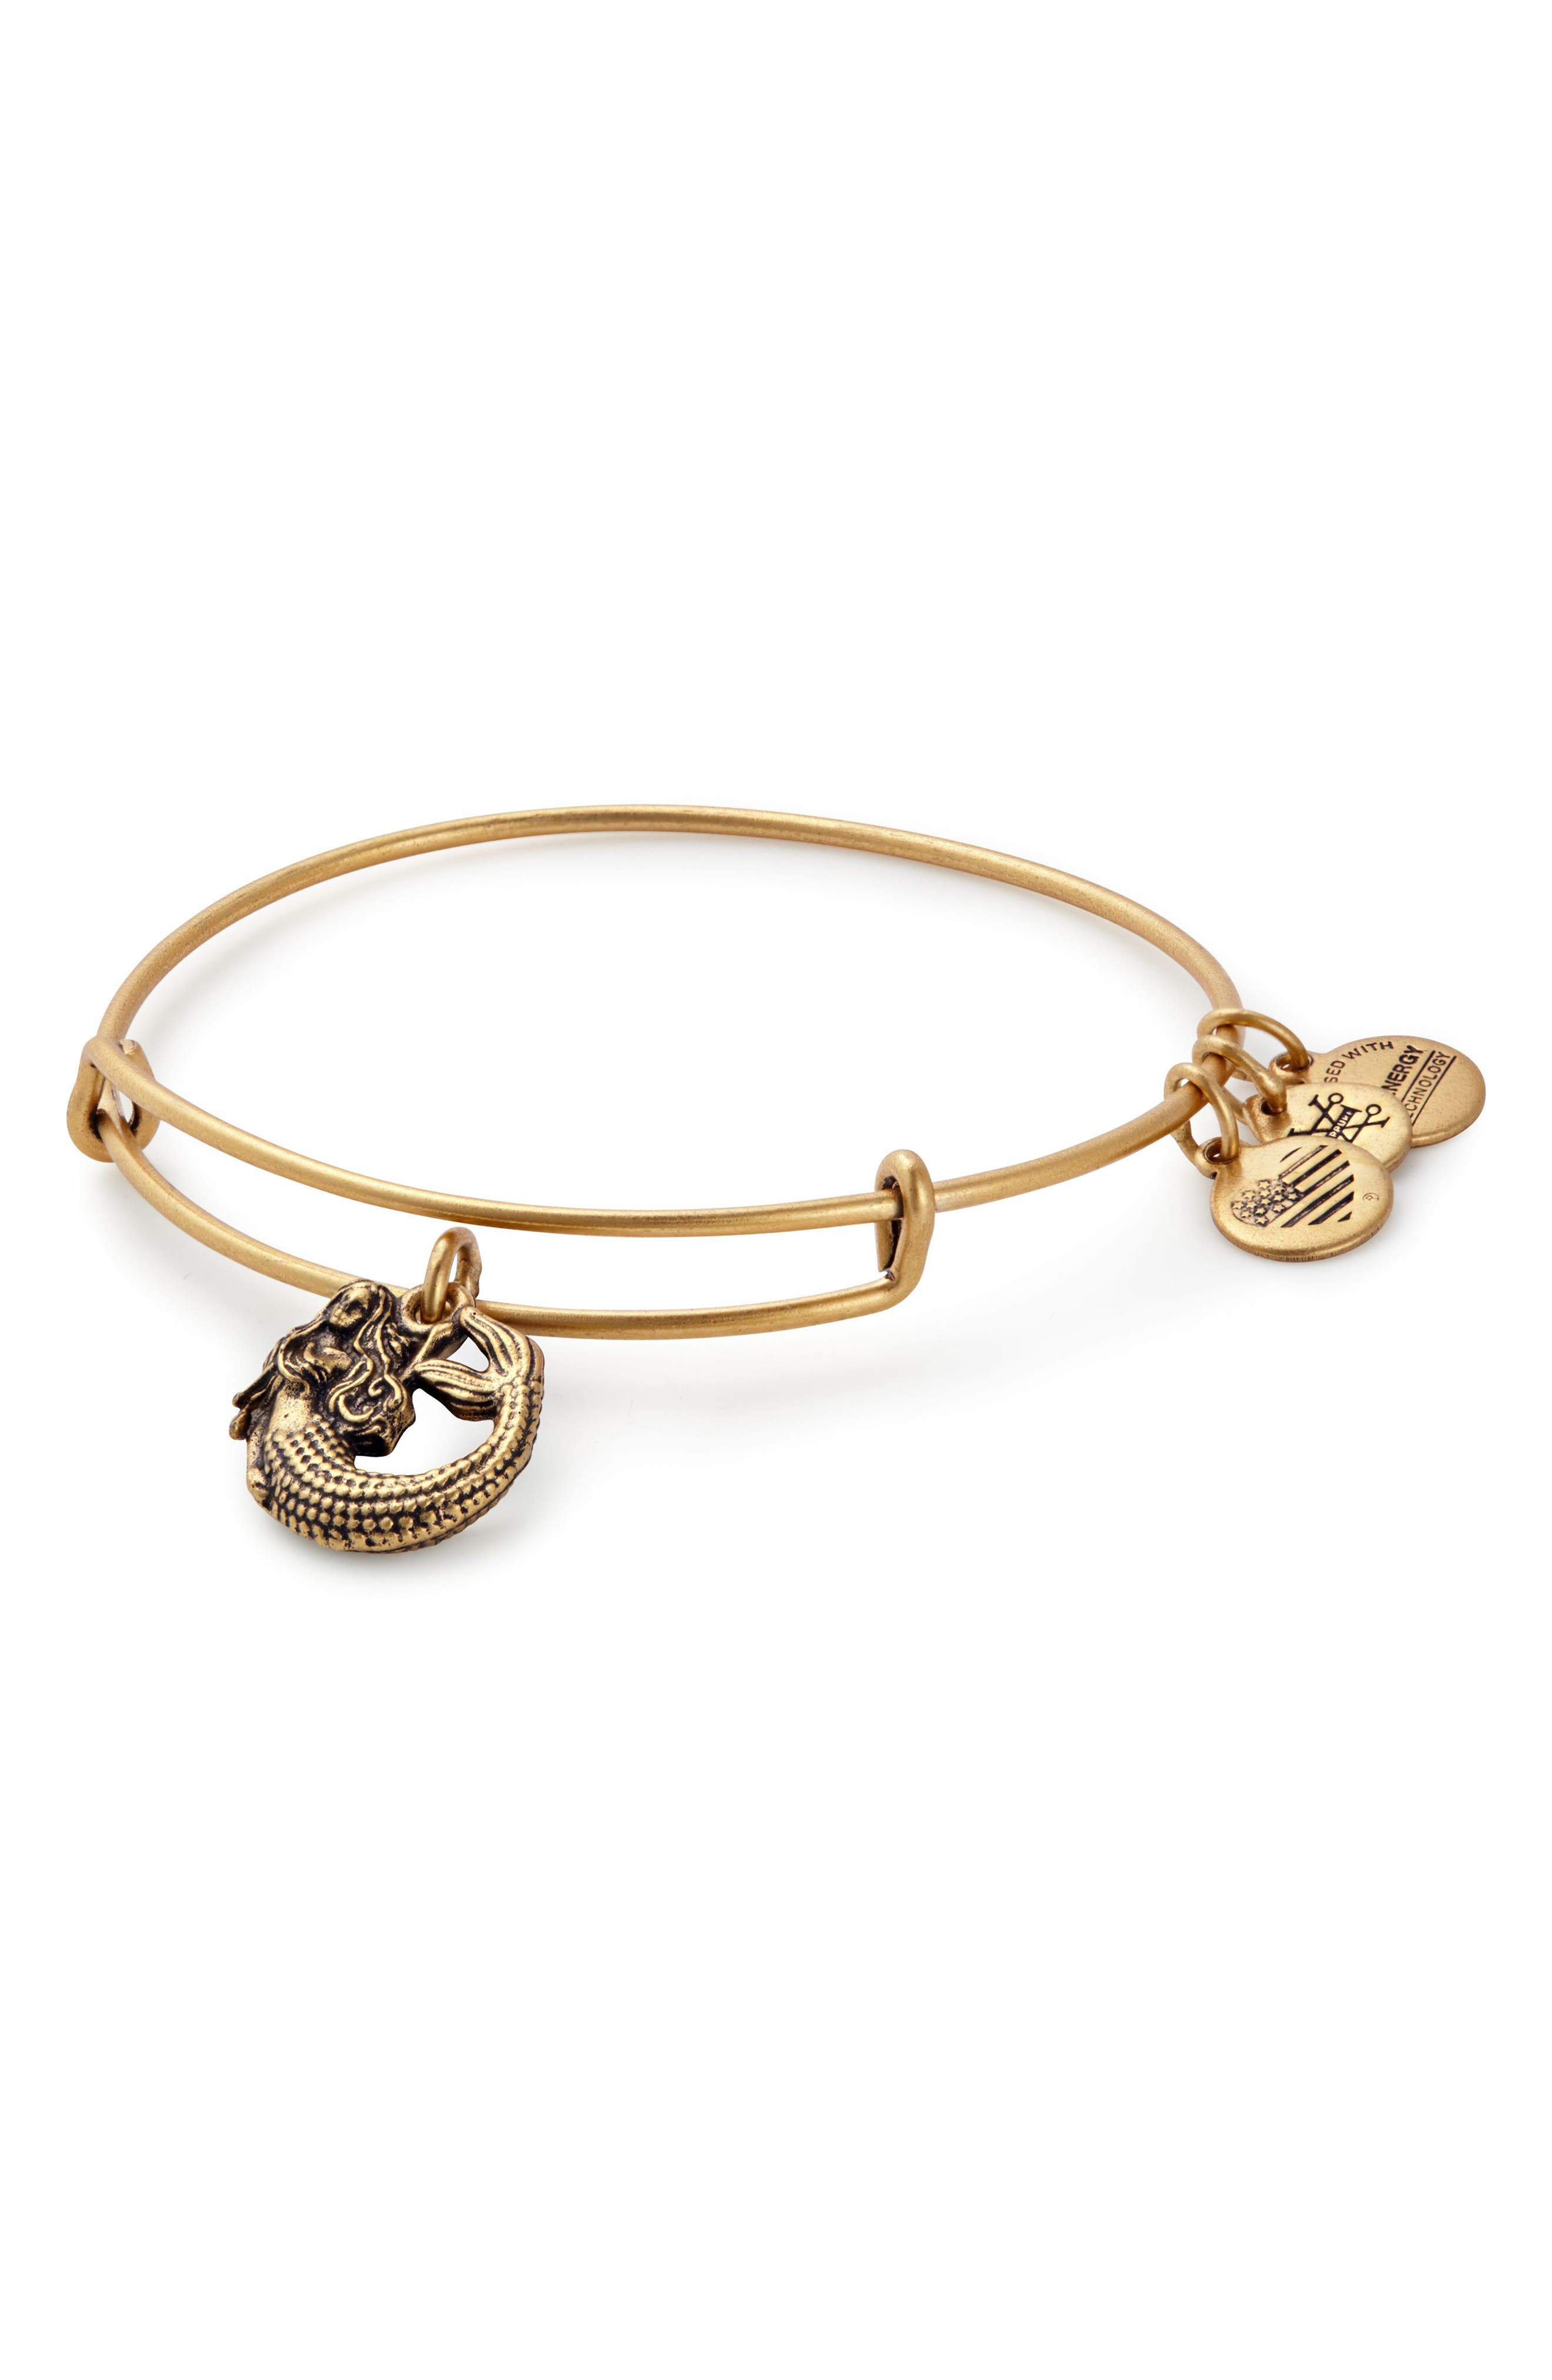 Mermaid Adjustable Wire Bangle,                         Main,                         color, Gold